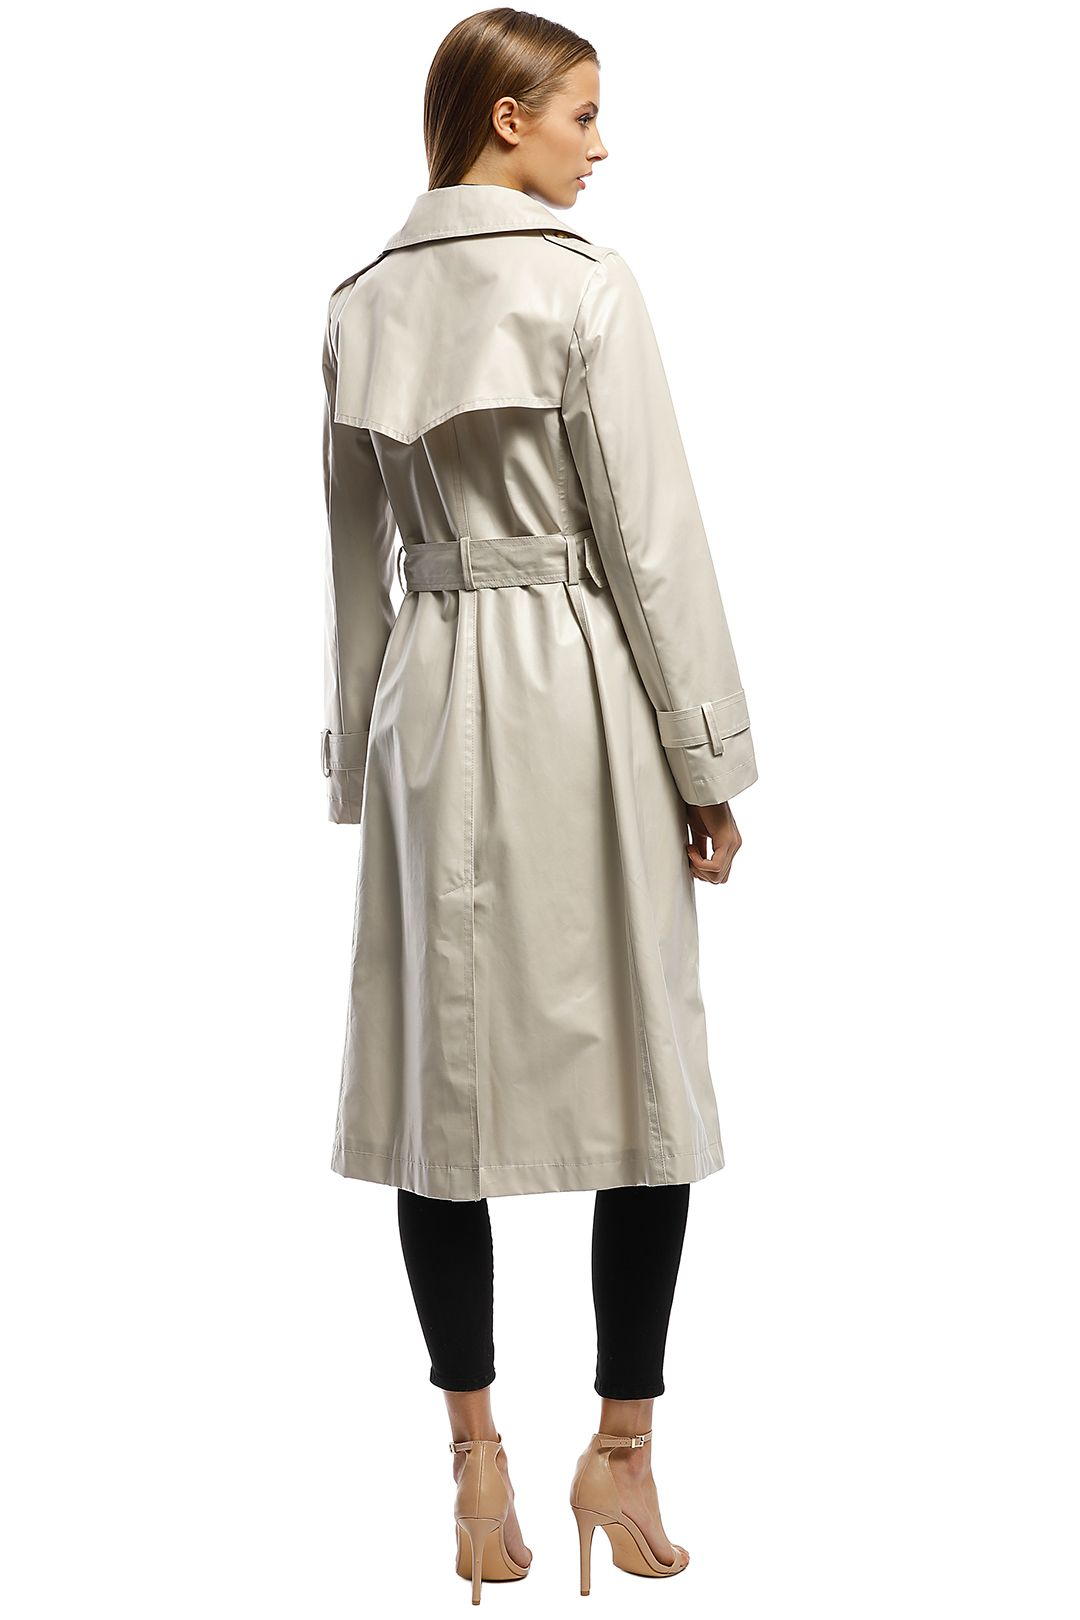 Moss-and-Spy-Poirot-Trench-Beige- Back